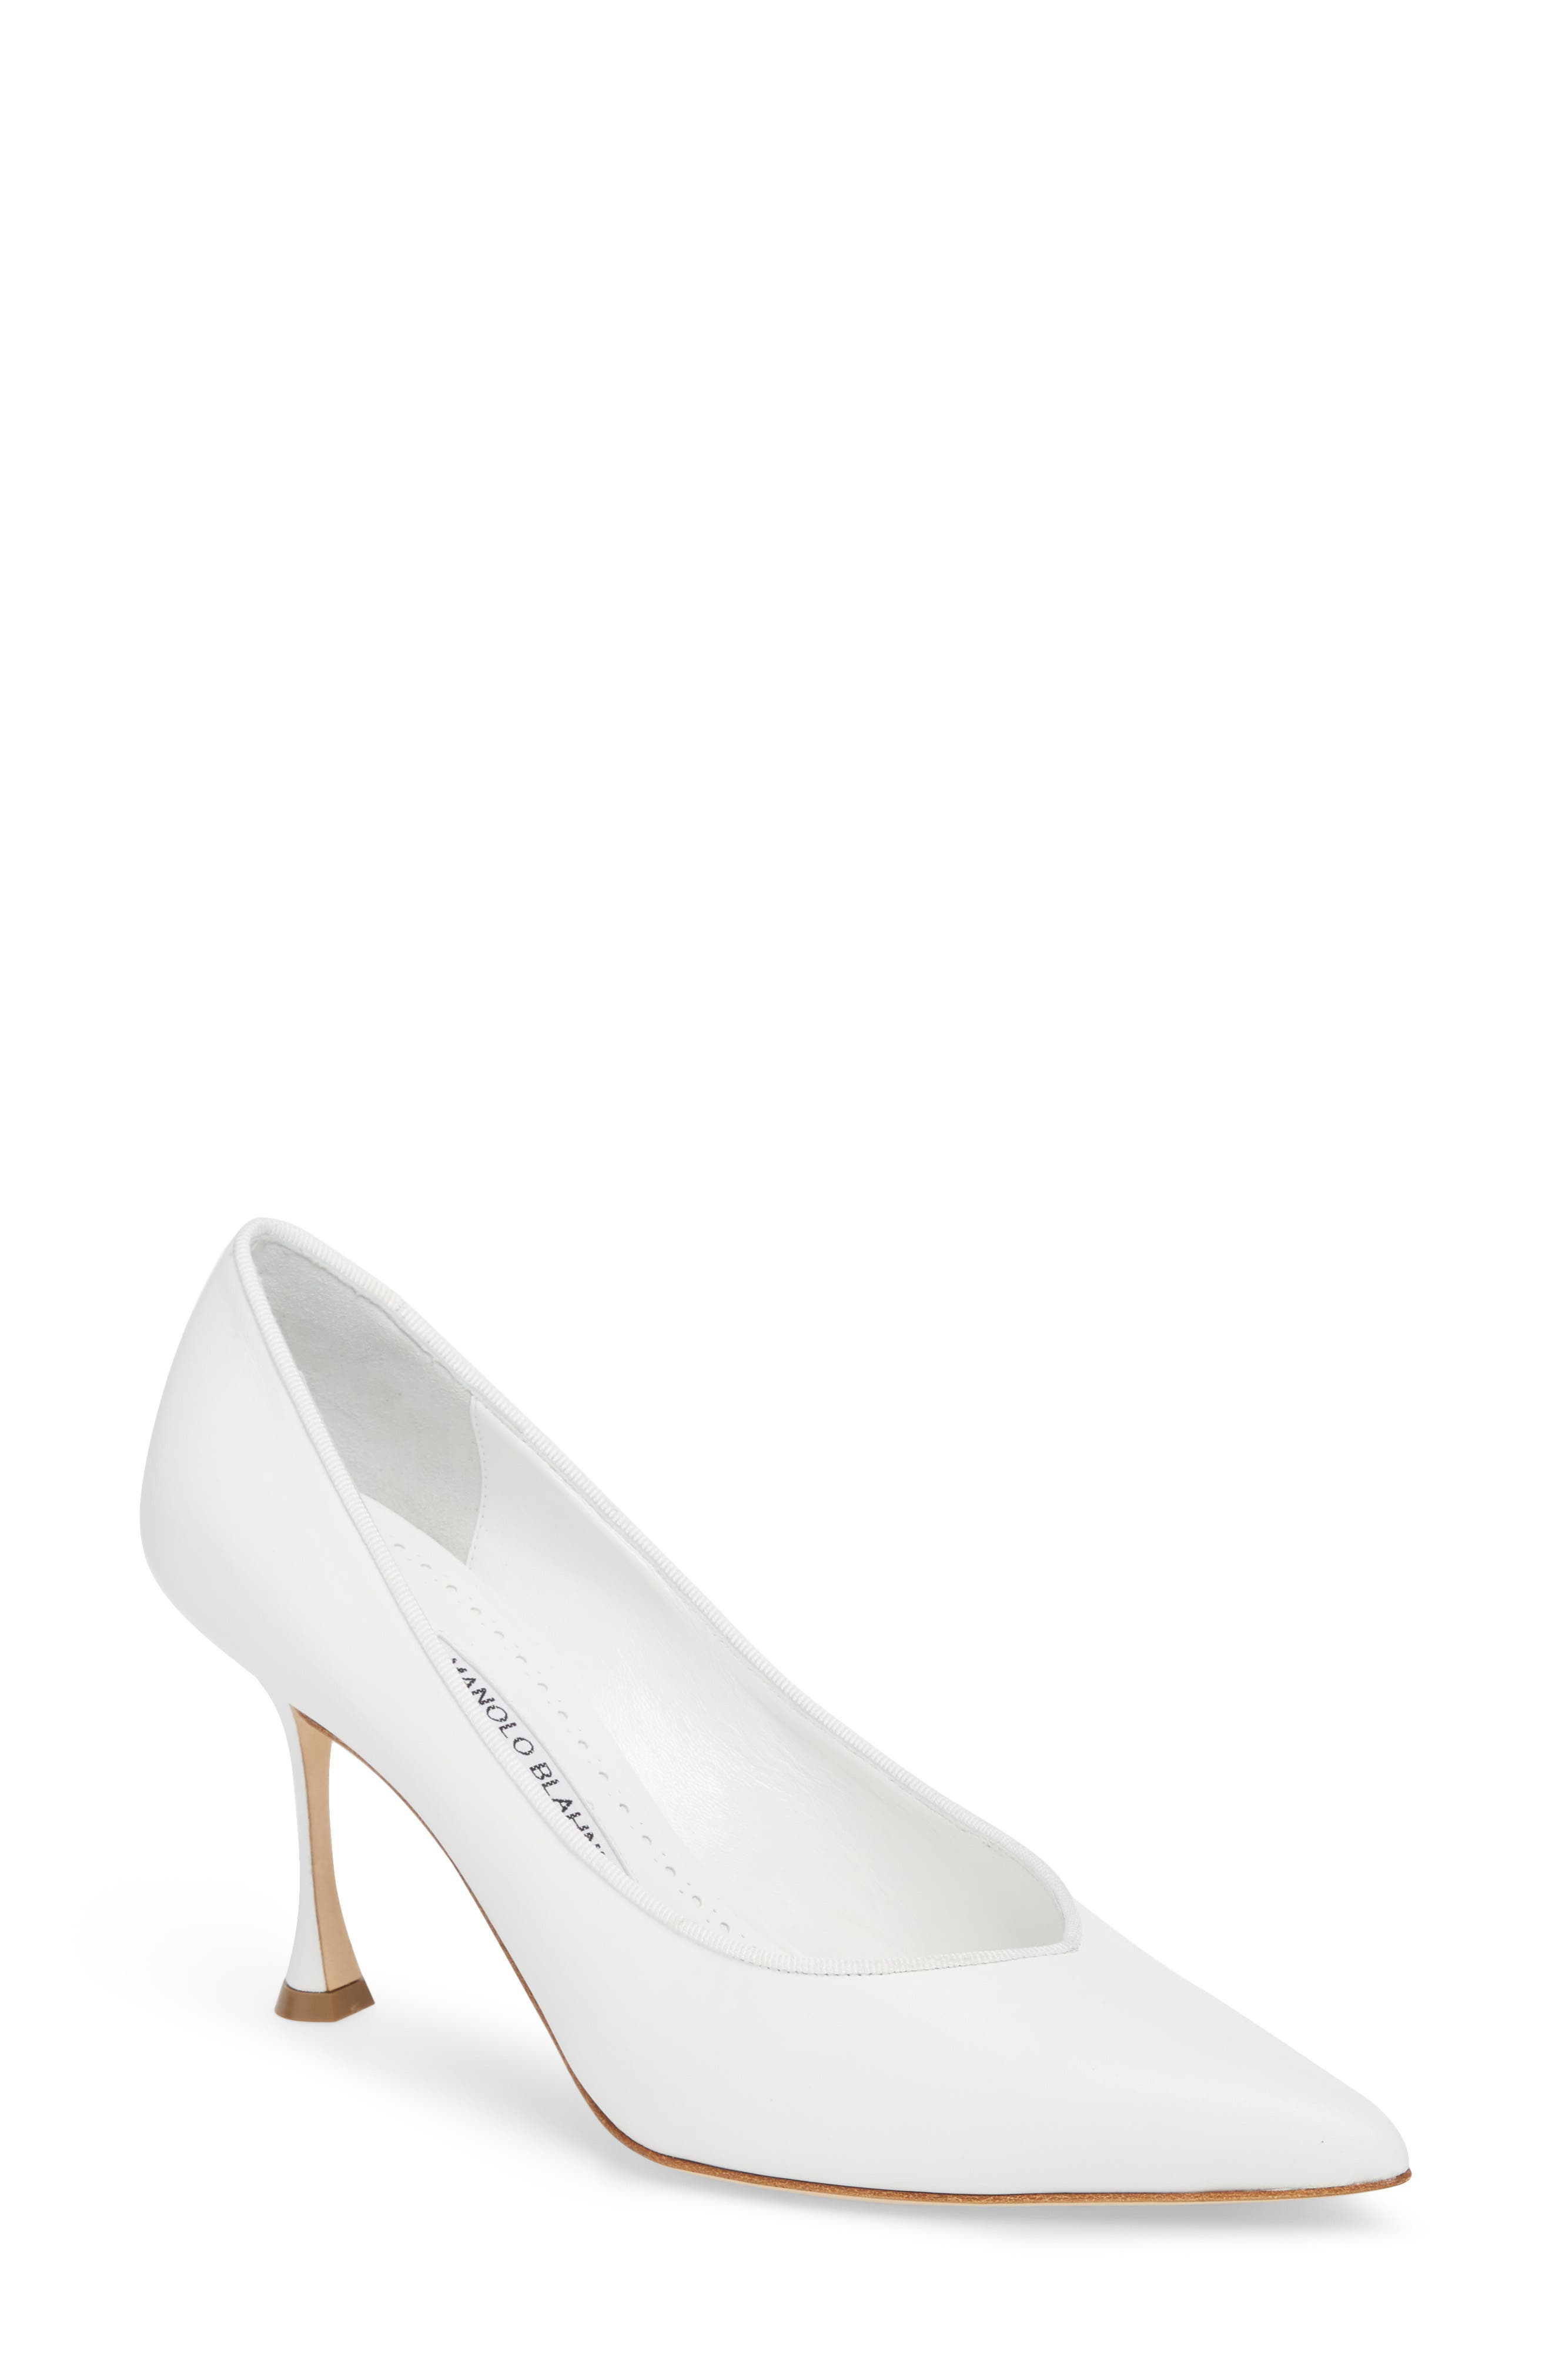 Urgenzapla Pointy Toe Pump,                             Main thumbnail 1, color,                             WHITE LEATHER